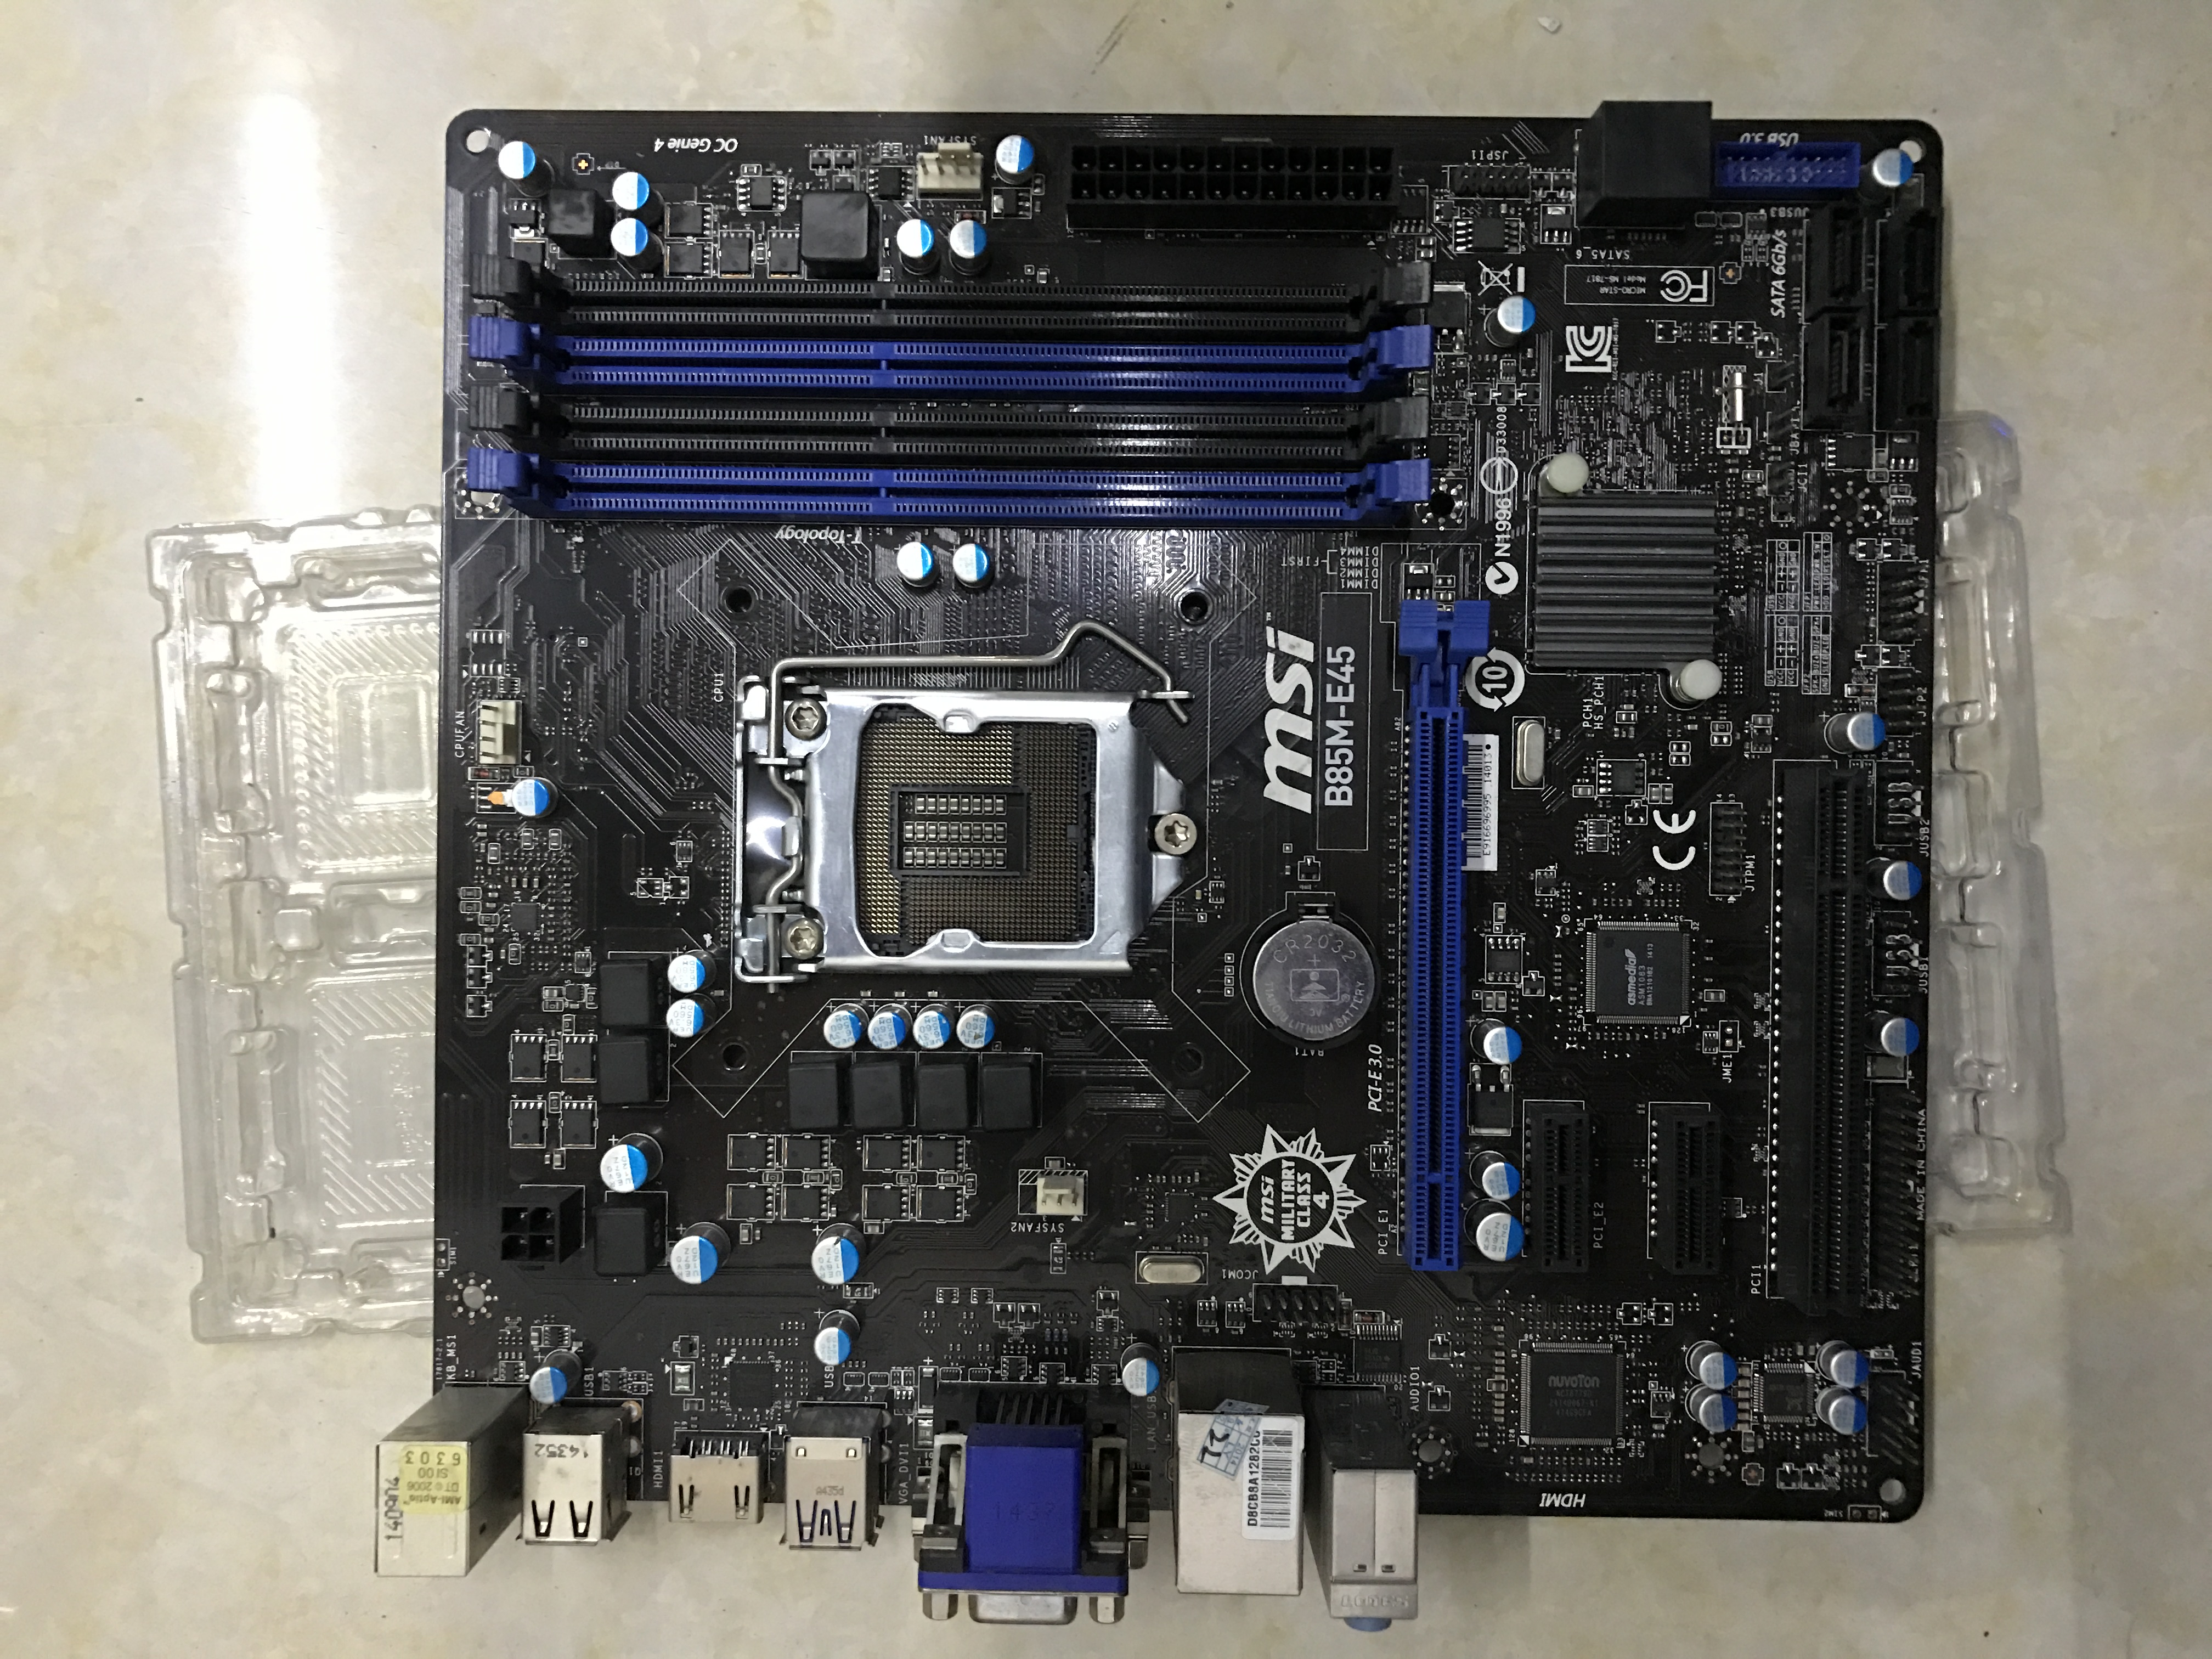 MSI B85M-E45 Motherboard LGA1150 Intel B85 DDR3 VGA DVI DHMI With I/O Shield